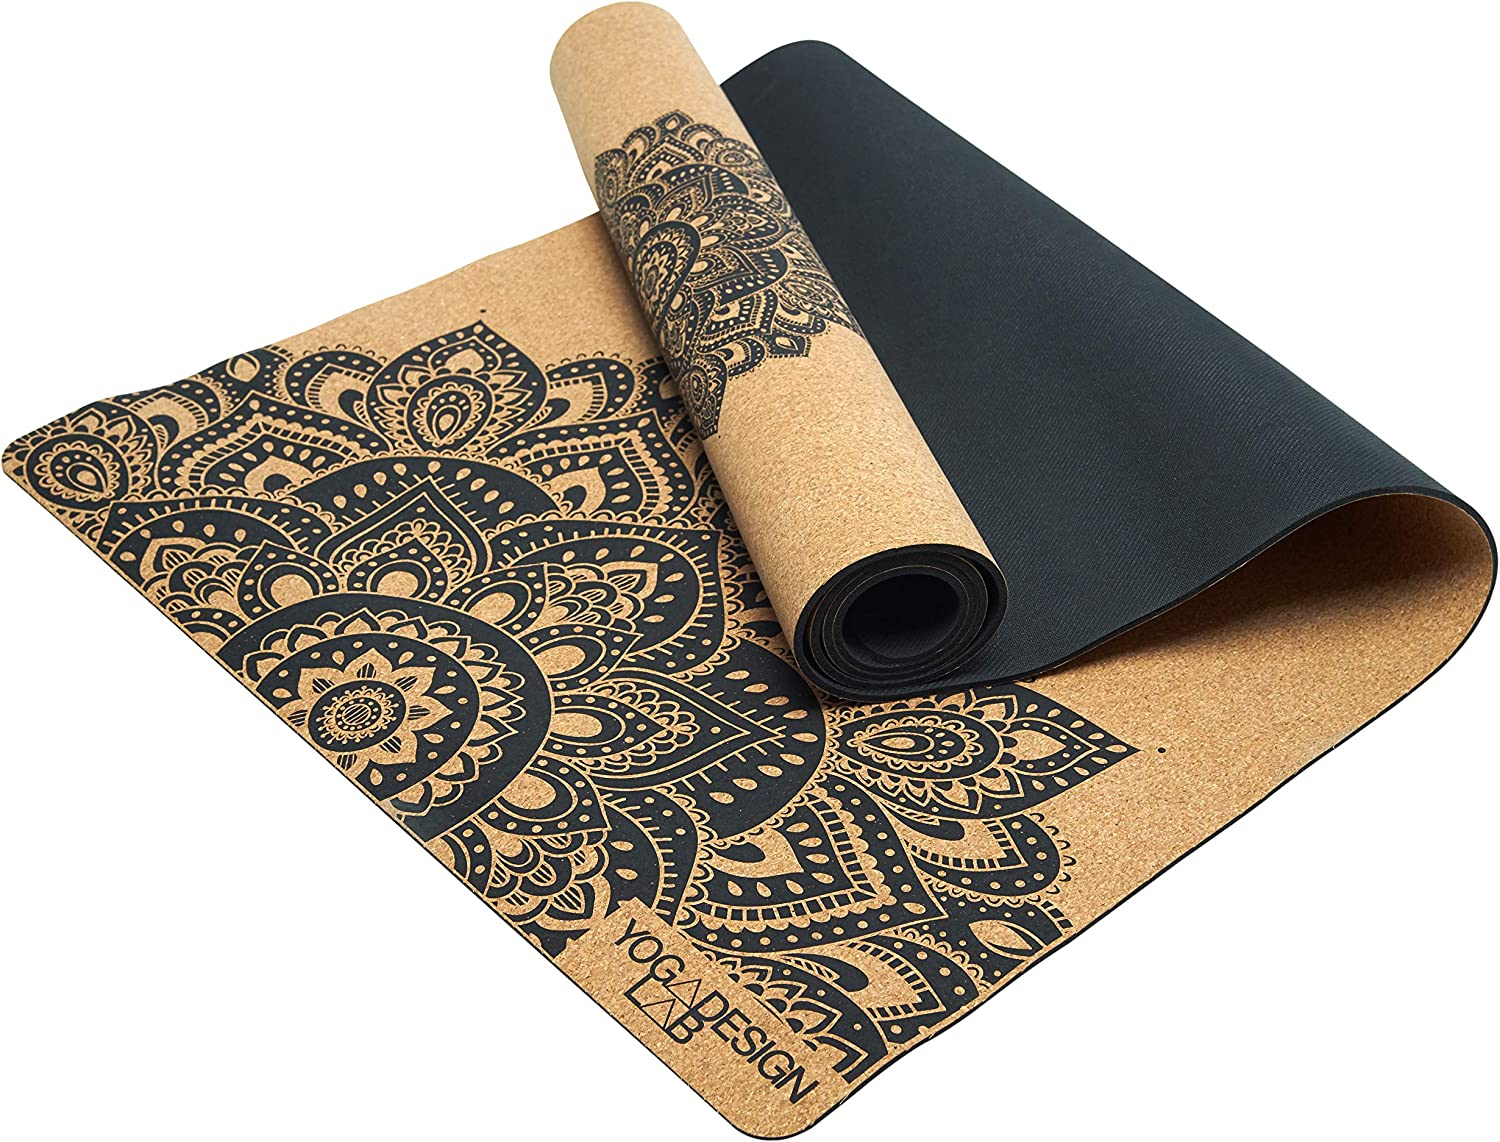 YOGA DESIGN LAB | The Cork Yoga Mat | Eco Luxury | Ideal for Hot Yoga, Power, Bikram, Ashtanga, Sweaty Workouts | Studio Quality | Includes Carrying ...